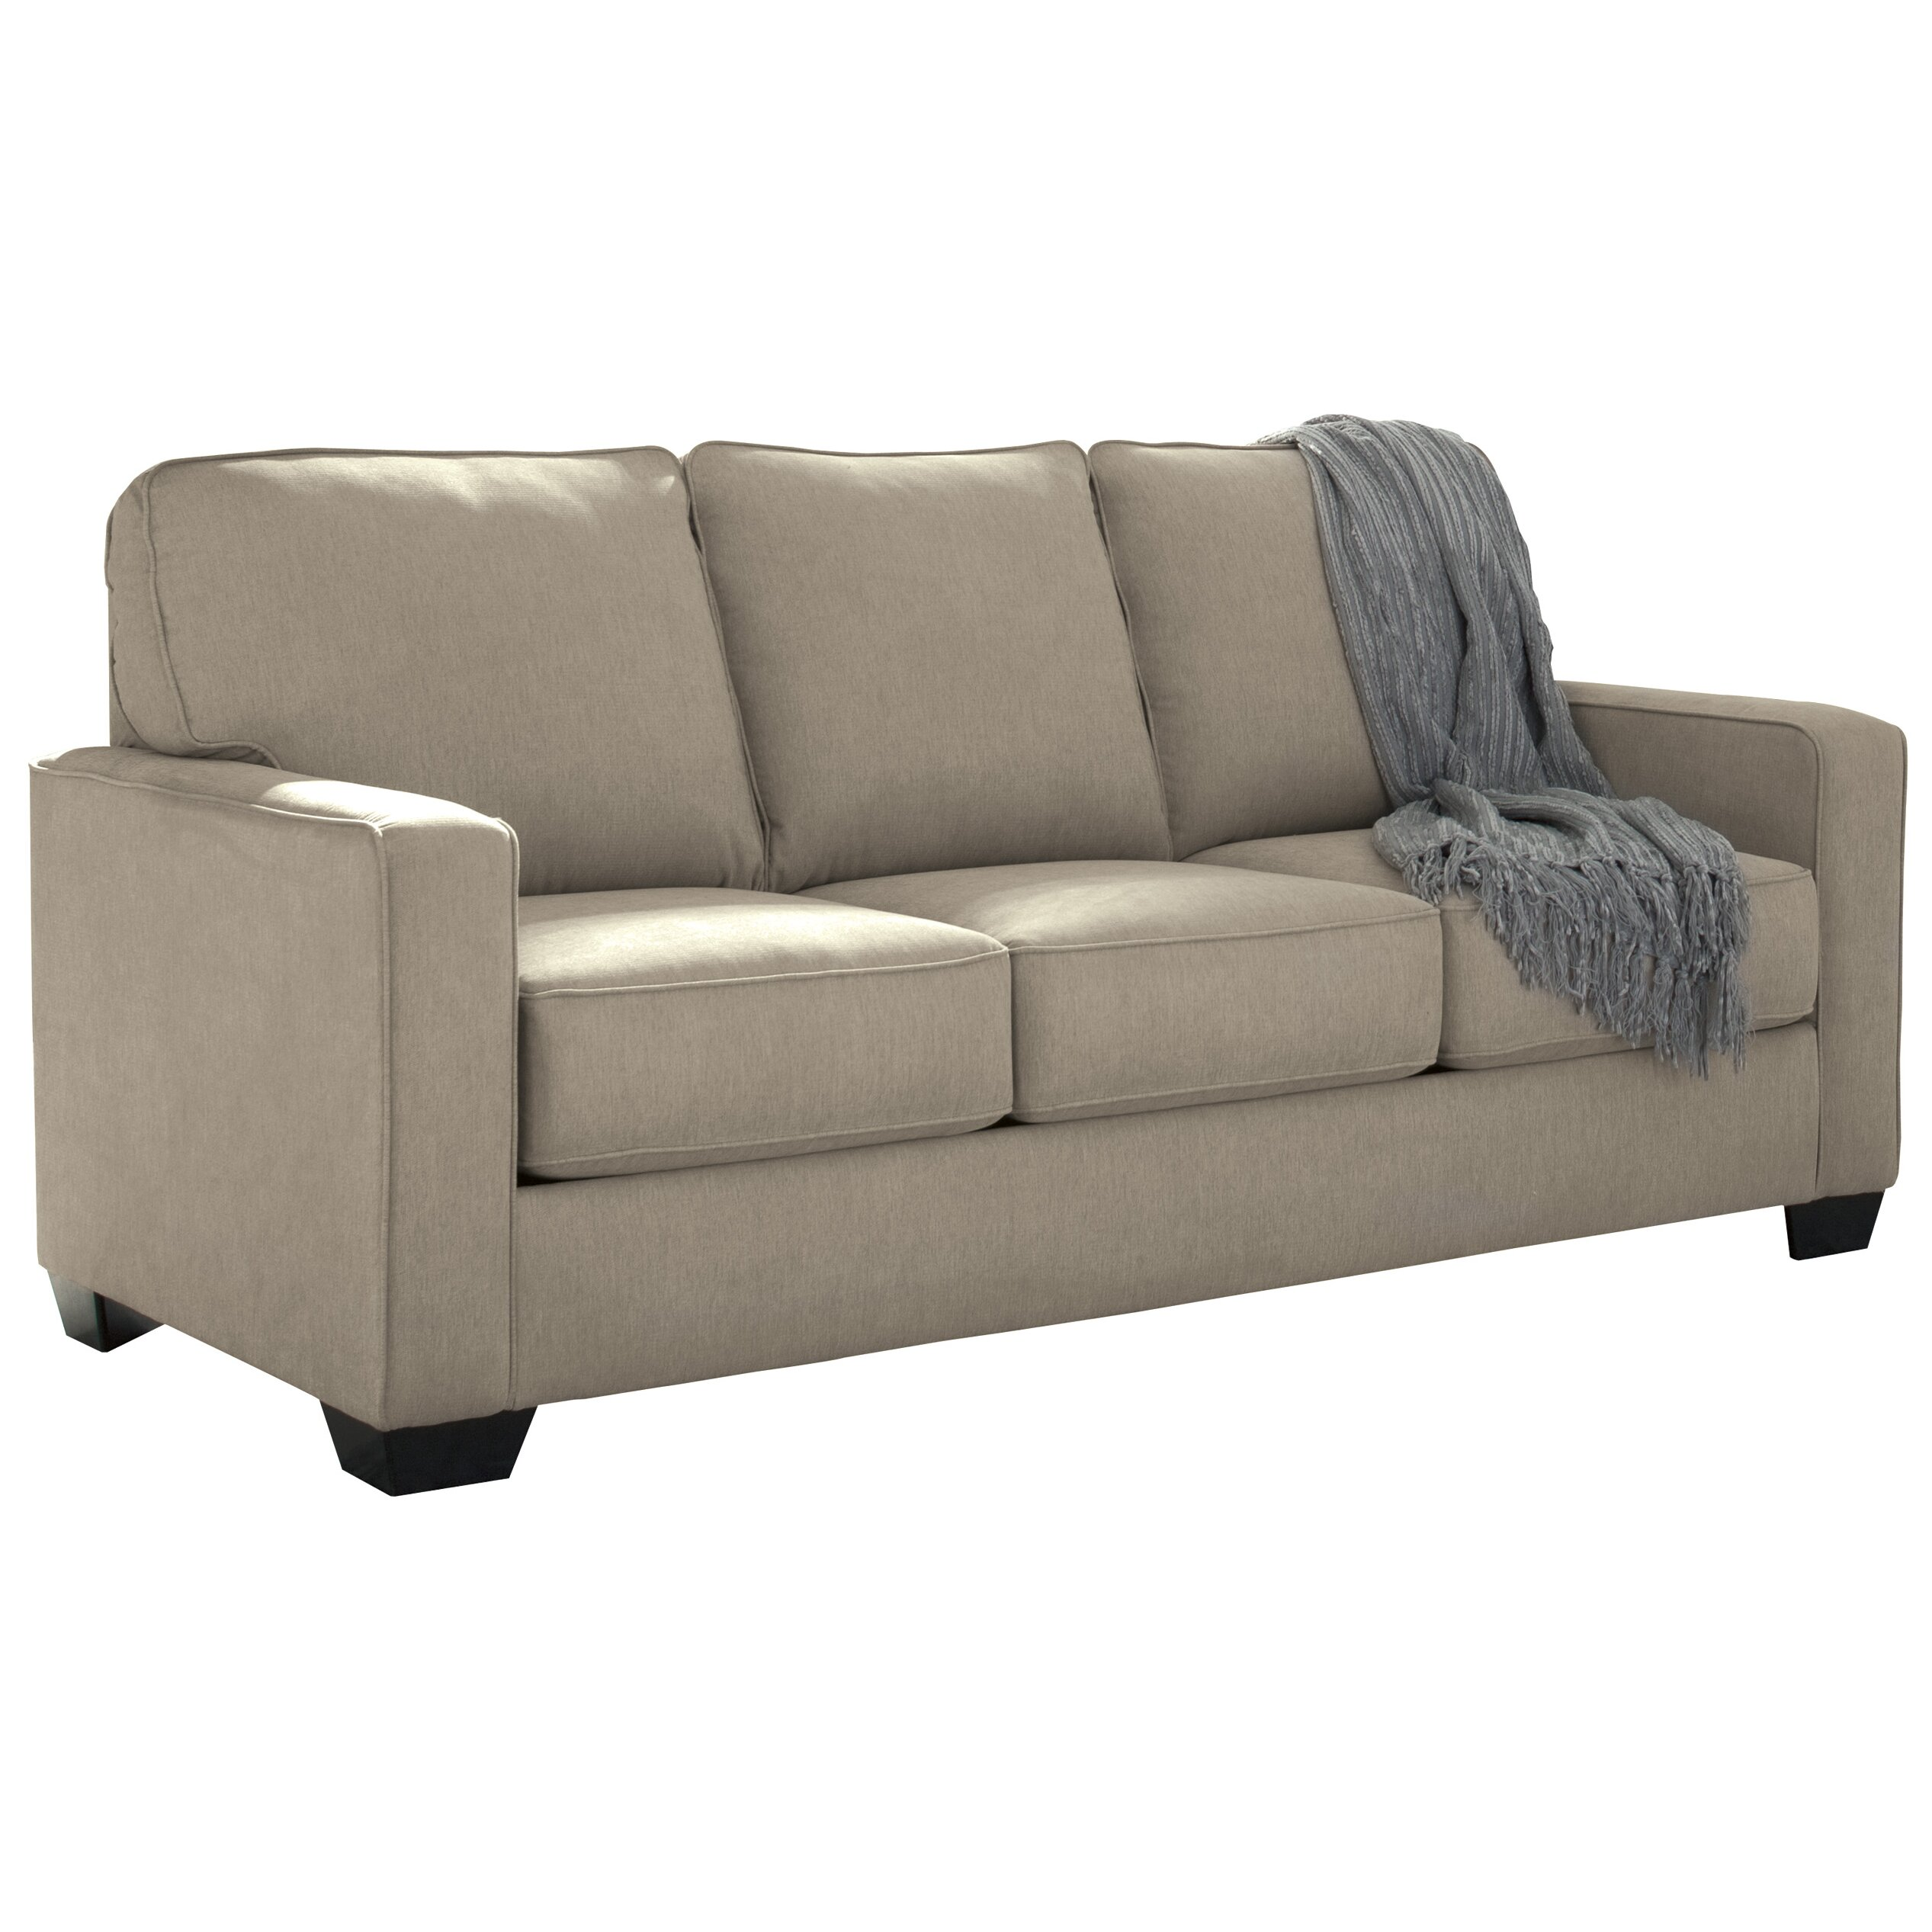 benchcraft sectional reviews benchcraft zeb sleeper sofa amp reviews wayfair ca 1583